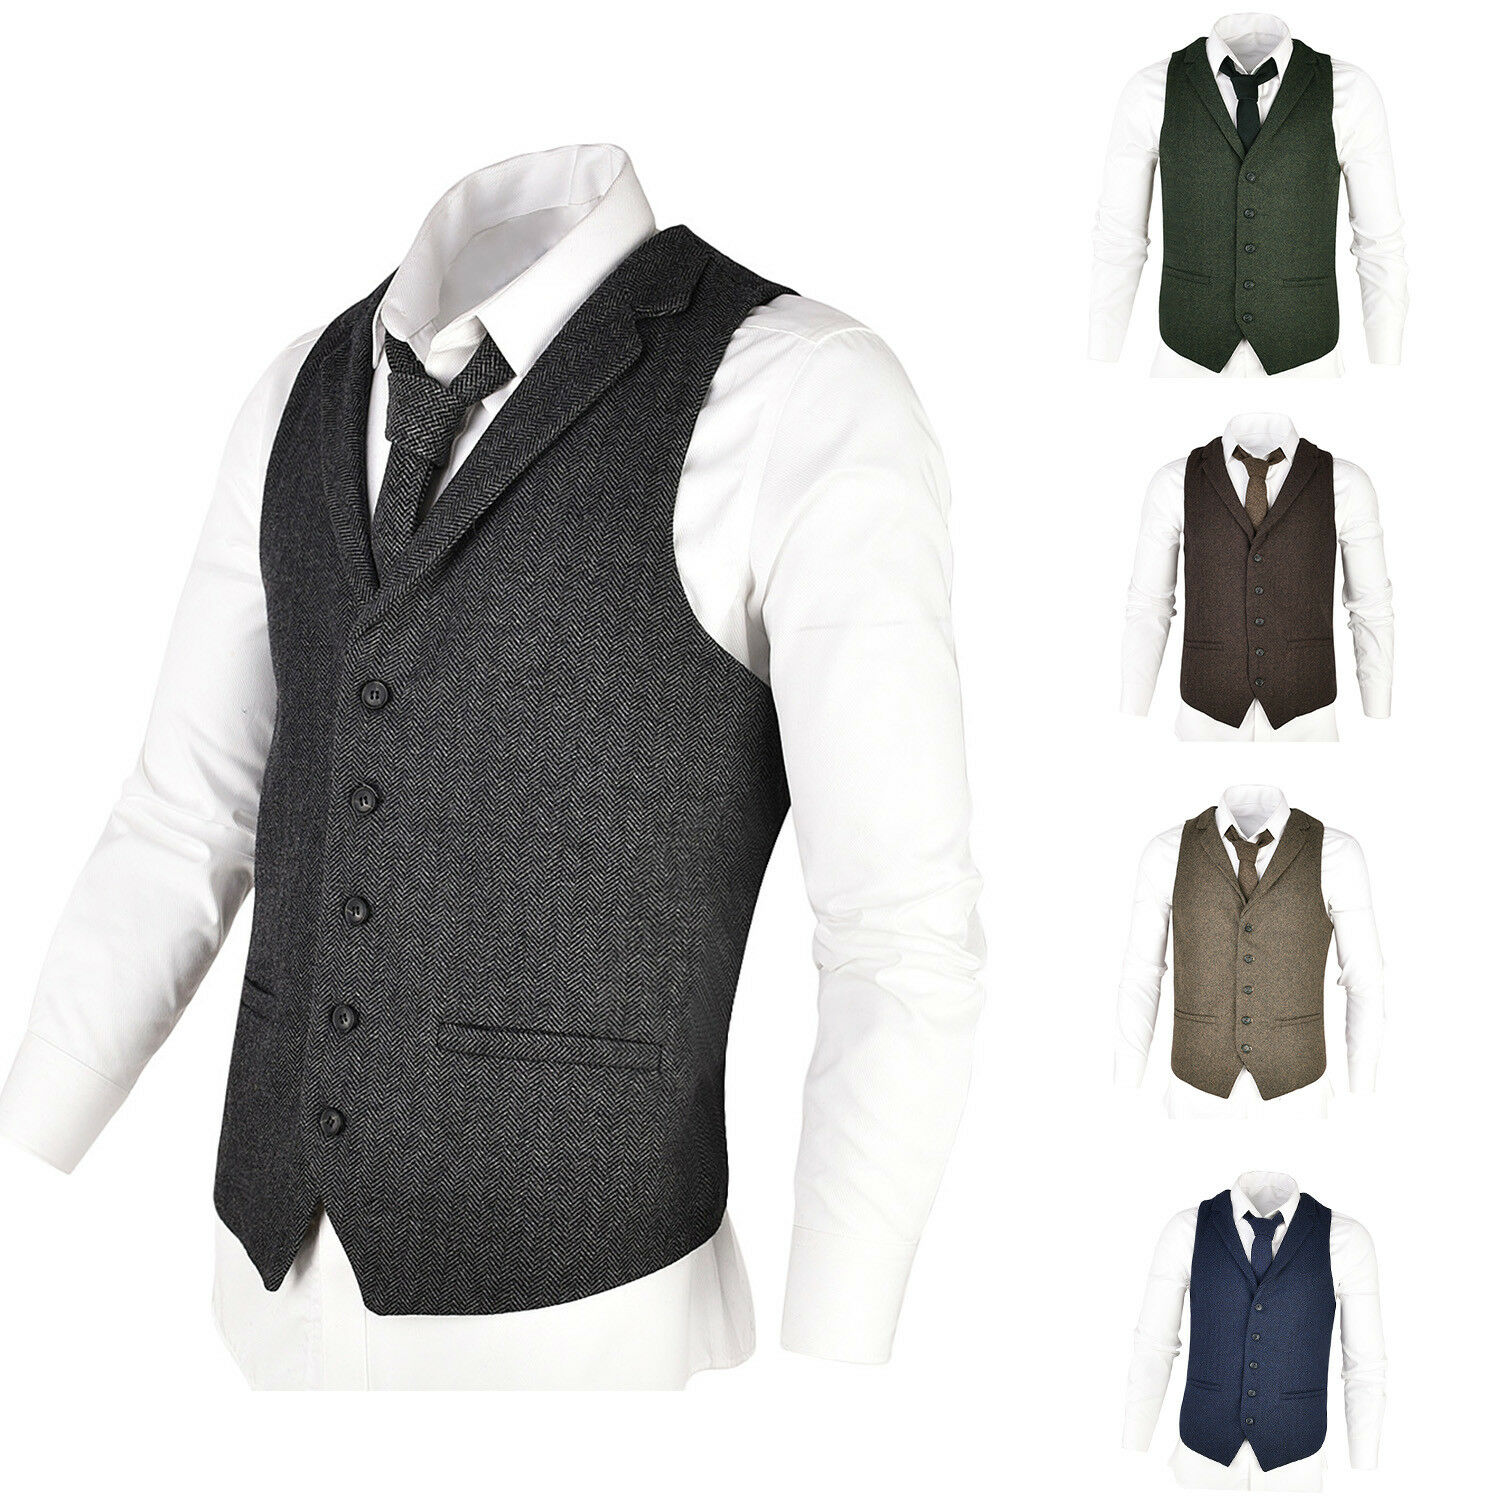 MENS WOOL BLEND HERRINGBONE TWEED LAPEL WAISTCOAT VEST GILET - ALL SIZES 3